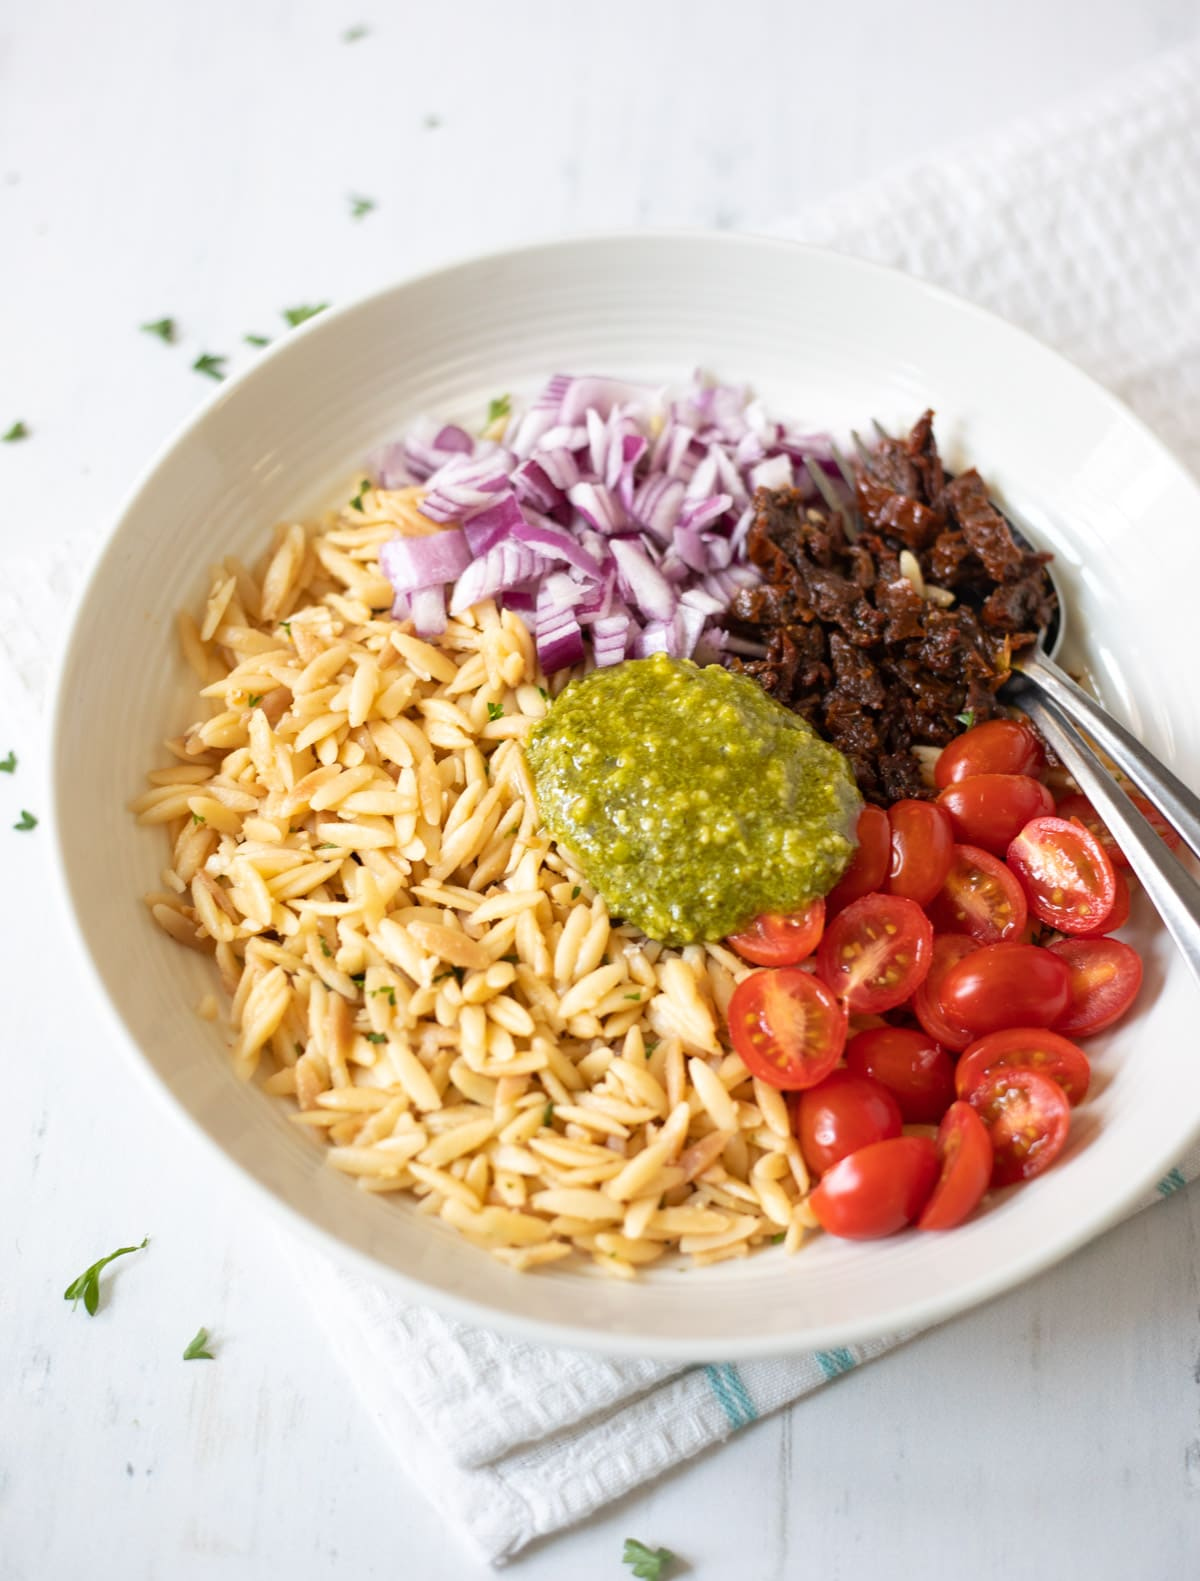 ingredients in a bowl to make salad such as orzo, tomatoes, onions and pesto